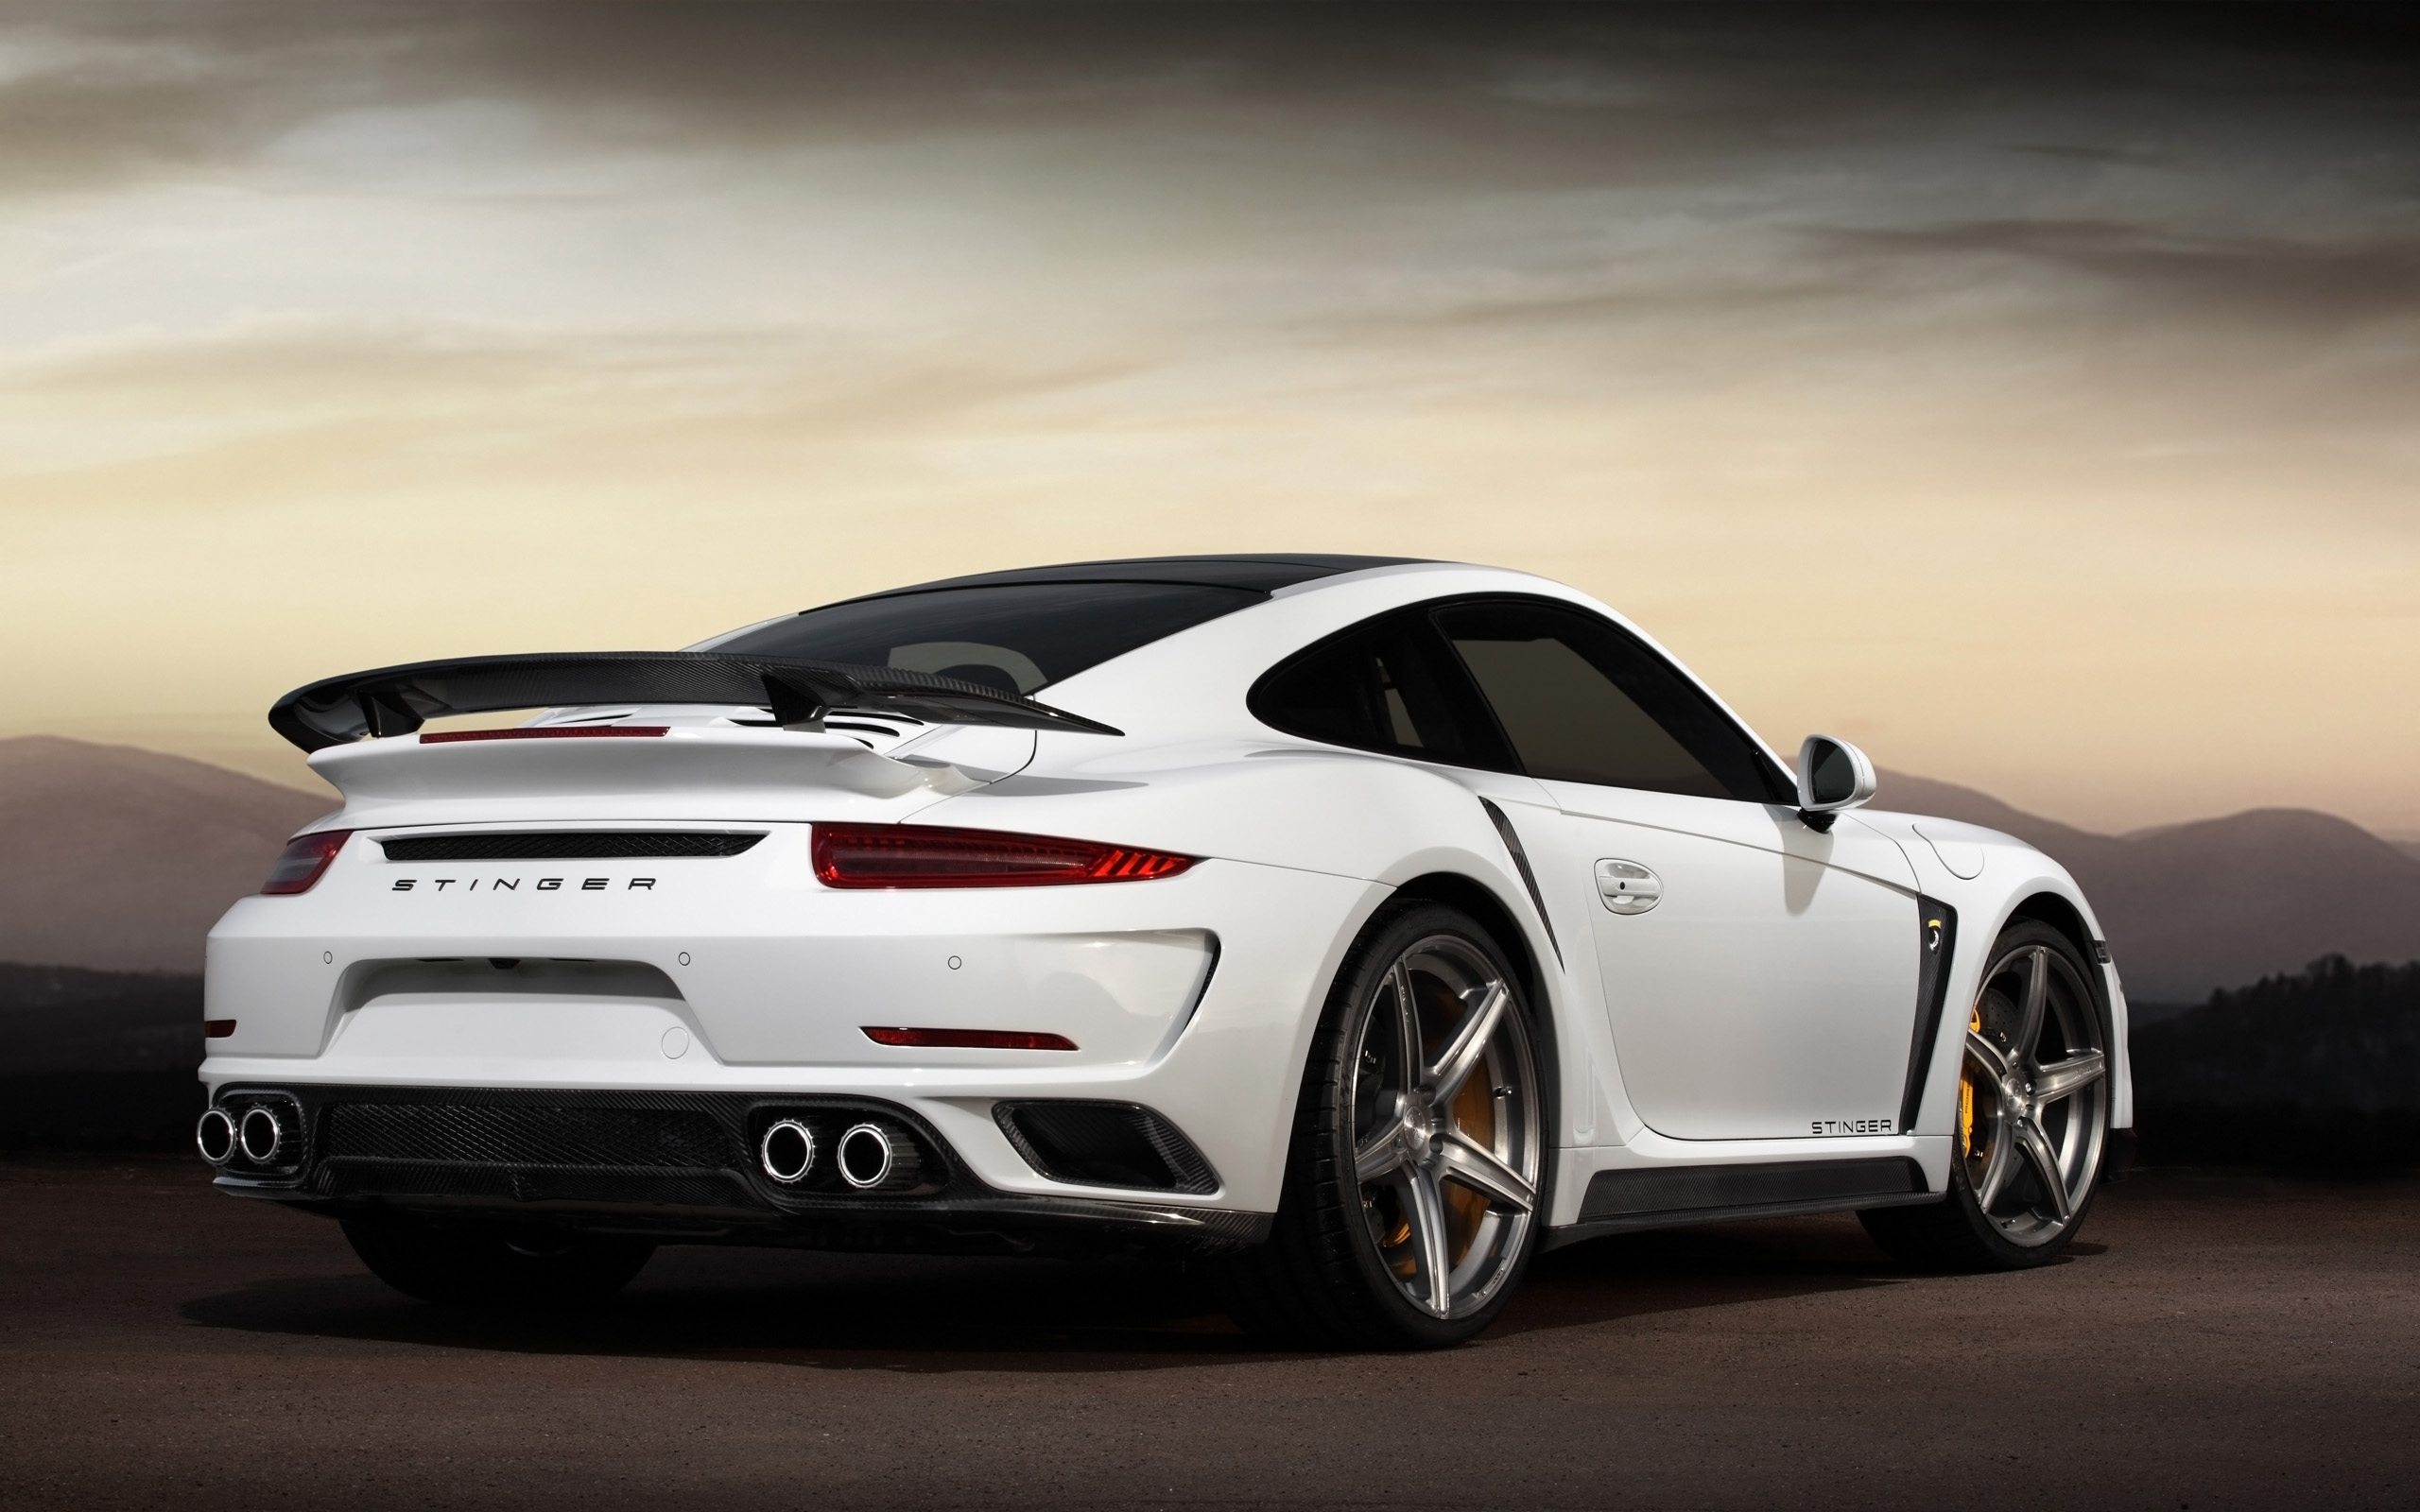 2015 topcar porsche 991 turbo stinger gtr 2 wallpaper hd car. Black Bedroom Furniture Sets. Home Design Ideas